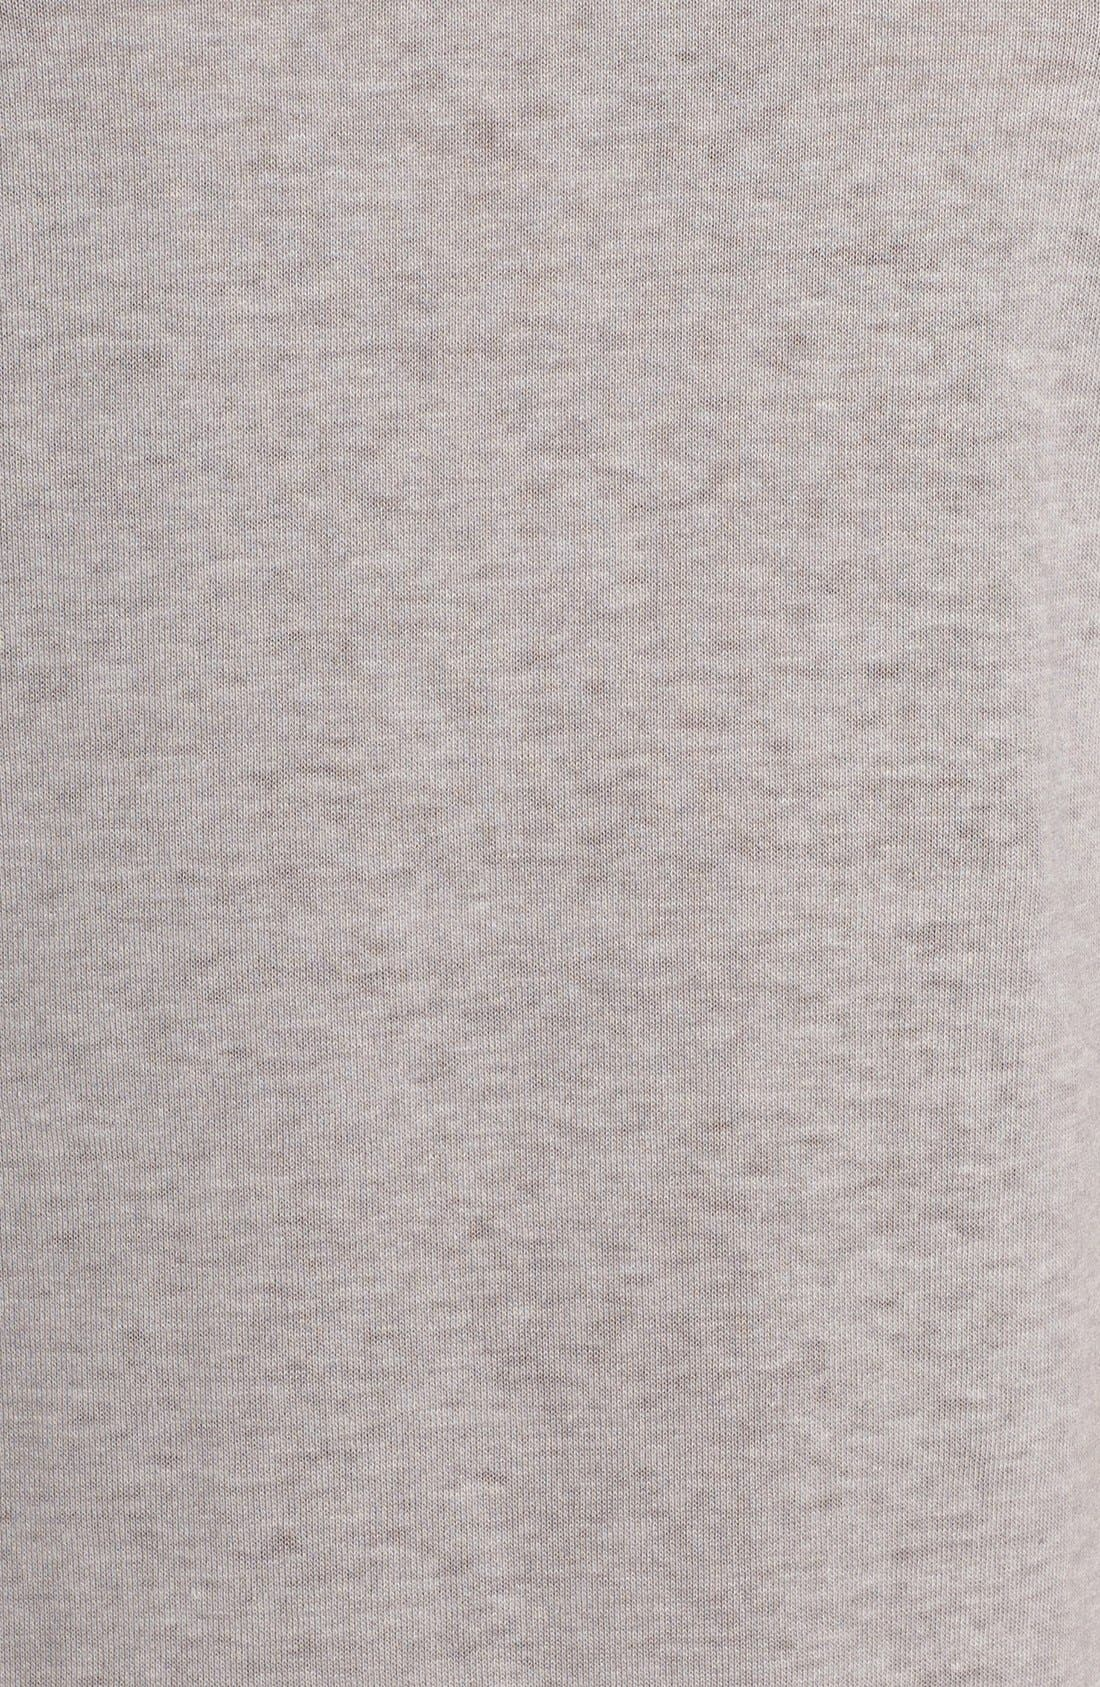 ,                             'Varsitease' Cotton Blend Sleep Shirt,                             Alternate thumbnail 17, color,                             053